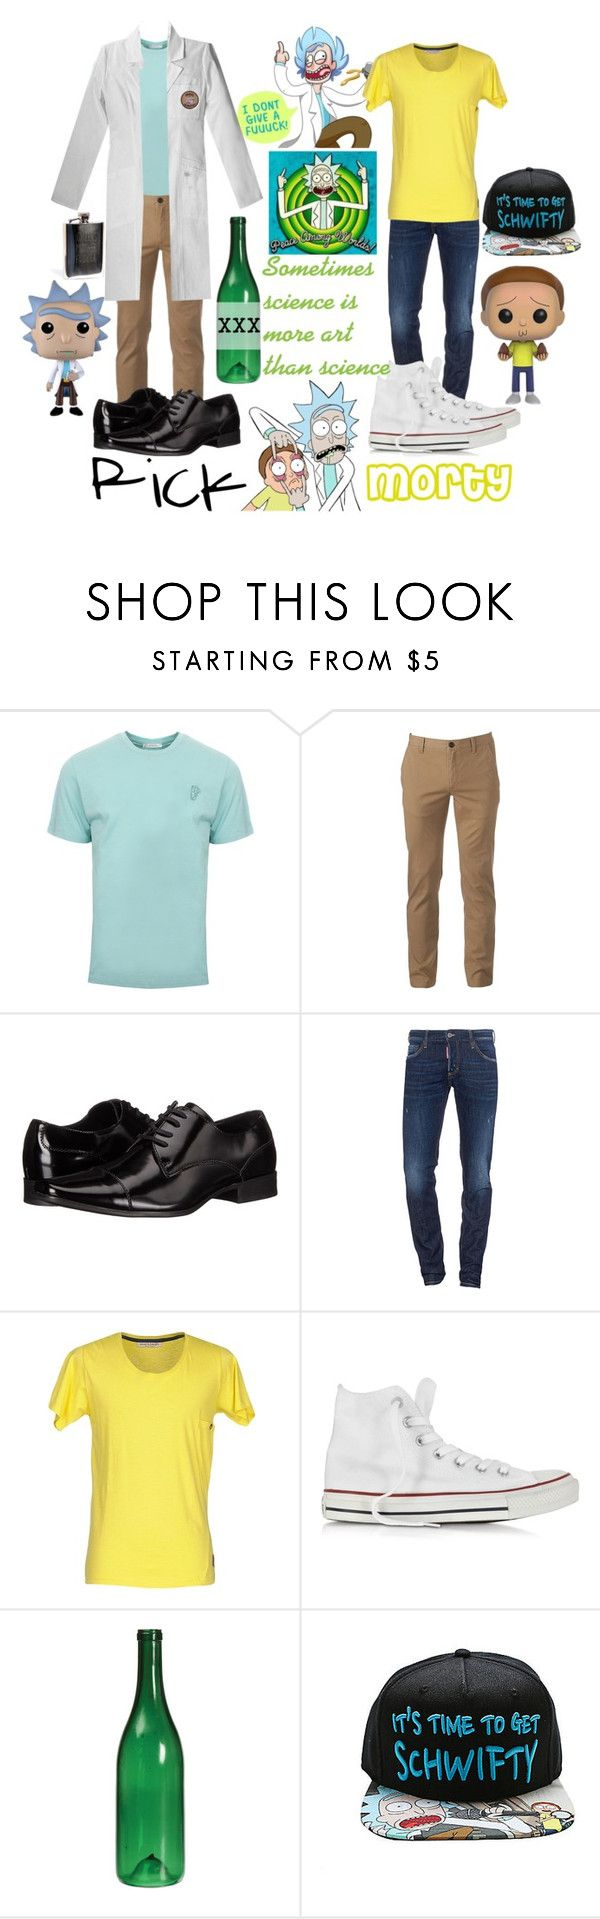 """Rick and morty (cosplay)"" by erinne1 ❤ liked on Polyvore featuring Versace, Urban Pipeline, Calvin Klein, Dsquared2, Anerkjendt, Converse, Funko, men's fashion and menswear"